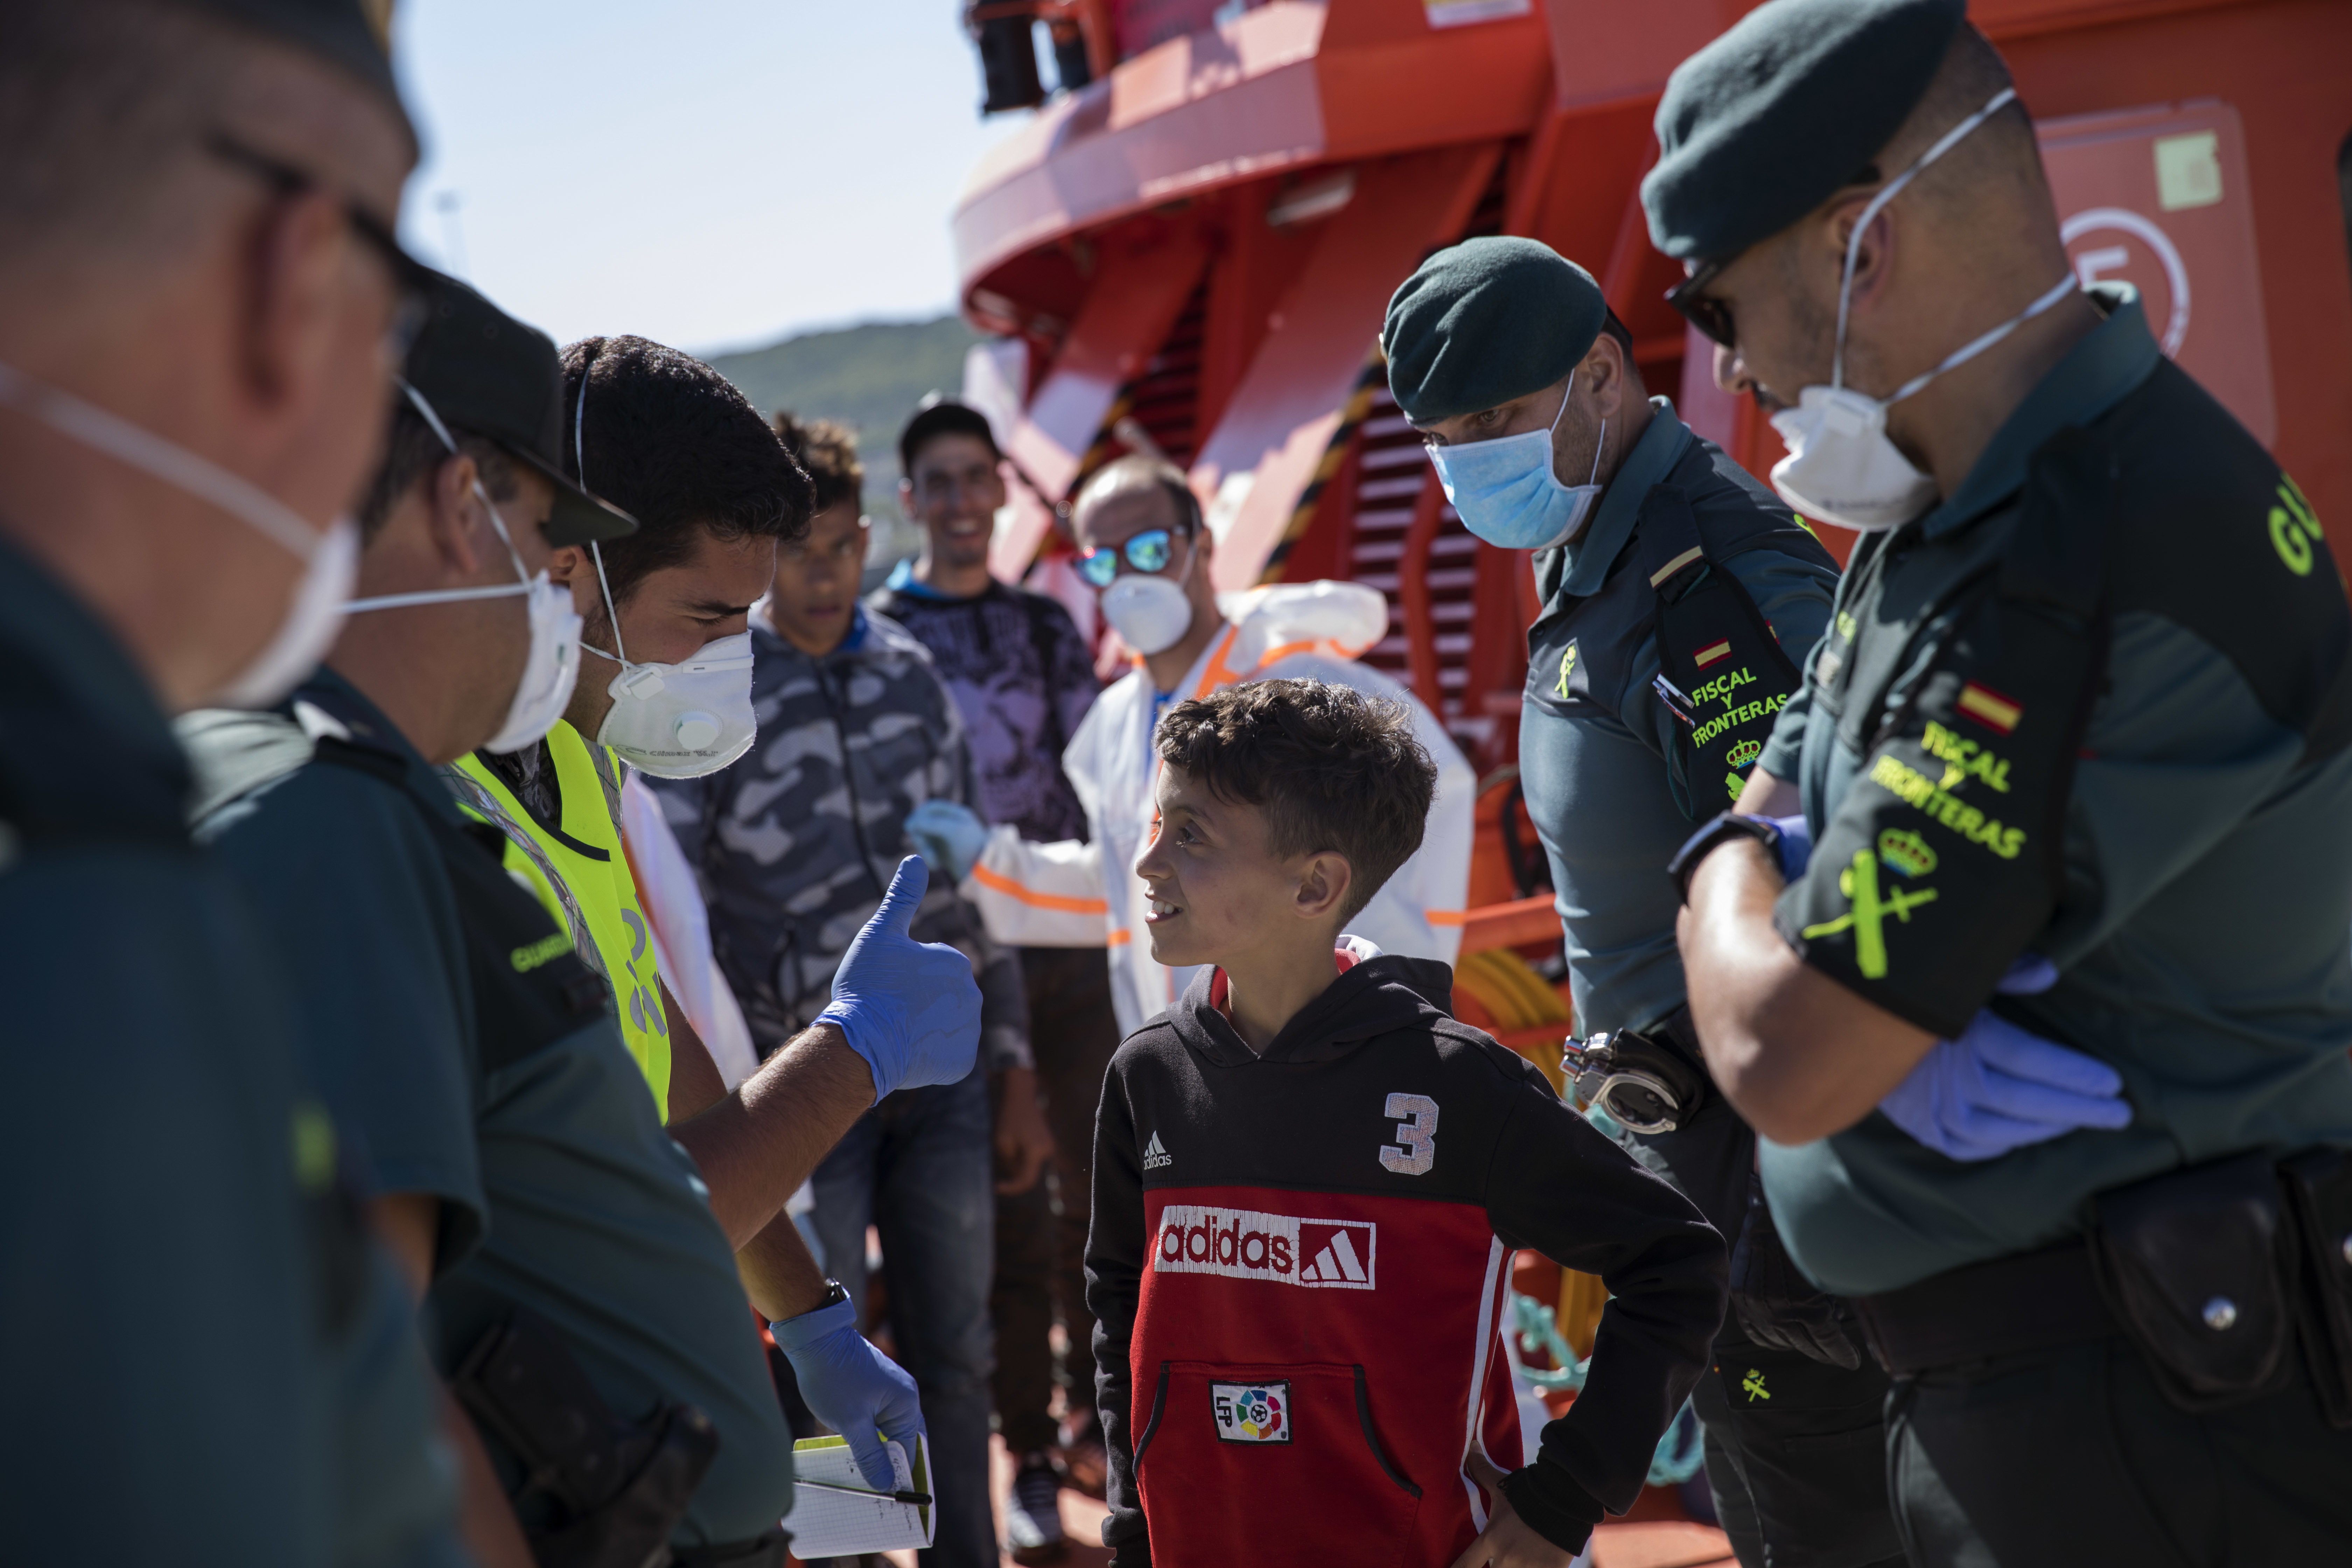 Guardia Civil officers joke with a young migrant disembarking at the port of Barbate, southern Spain, after being rescued by Spain's Maritime Rescue Service in the Strait of Gibraltar, Wednesday, June 27, 2018.